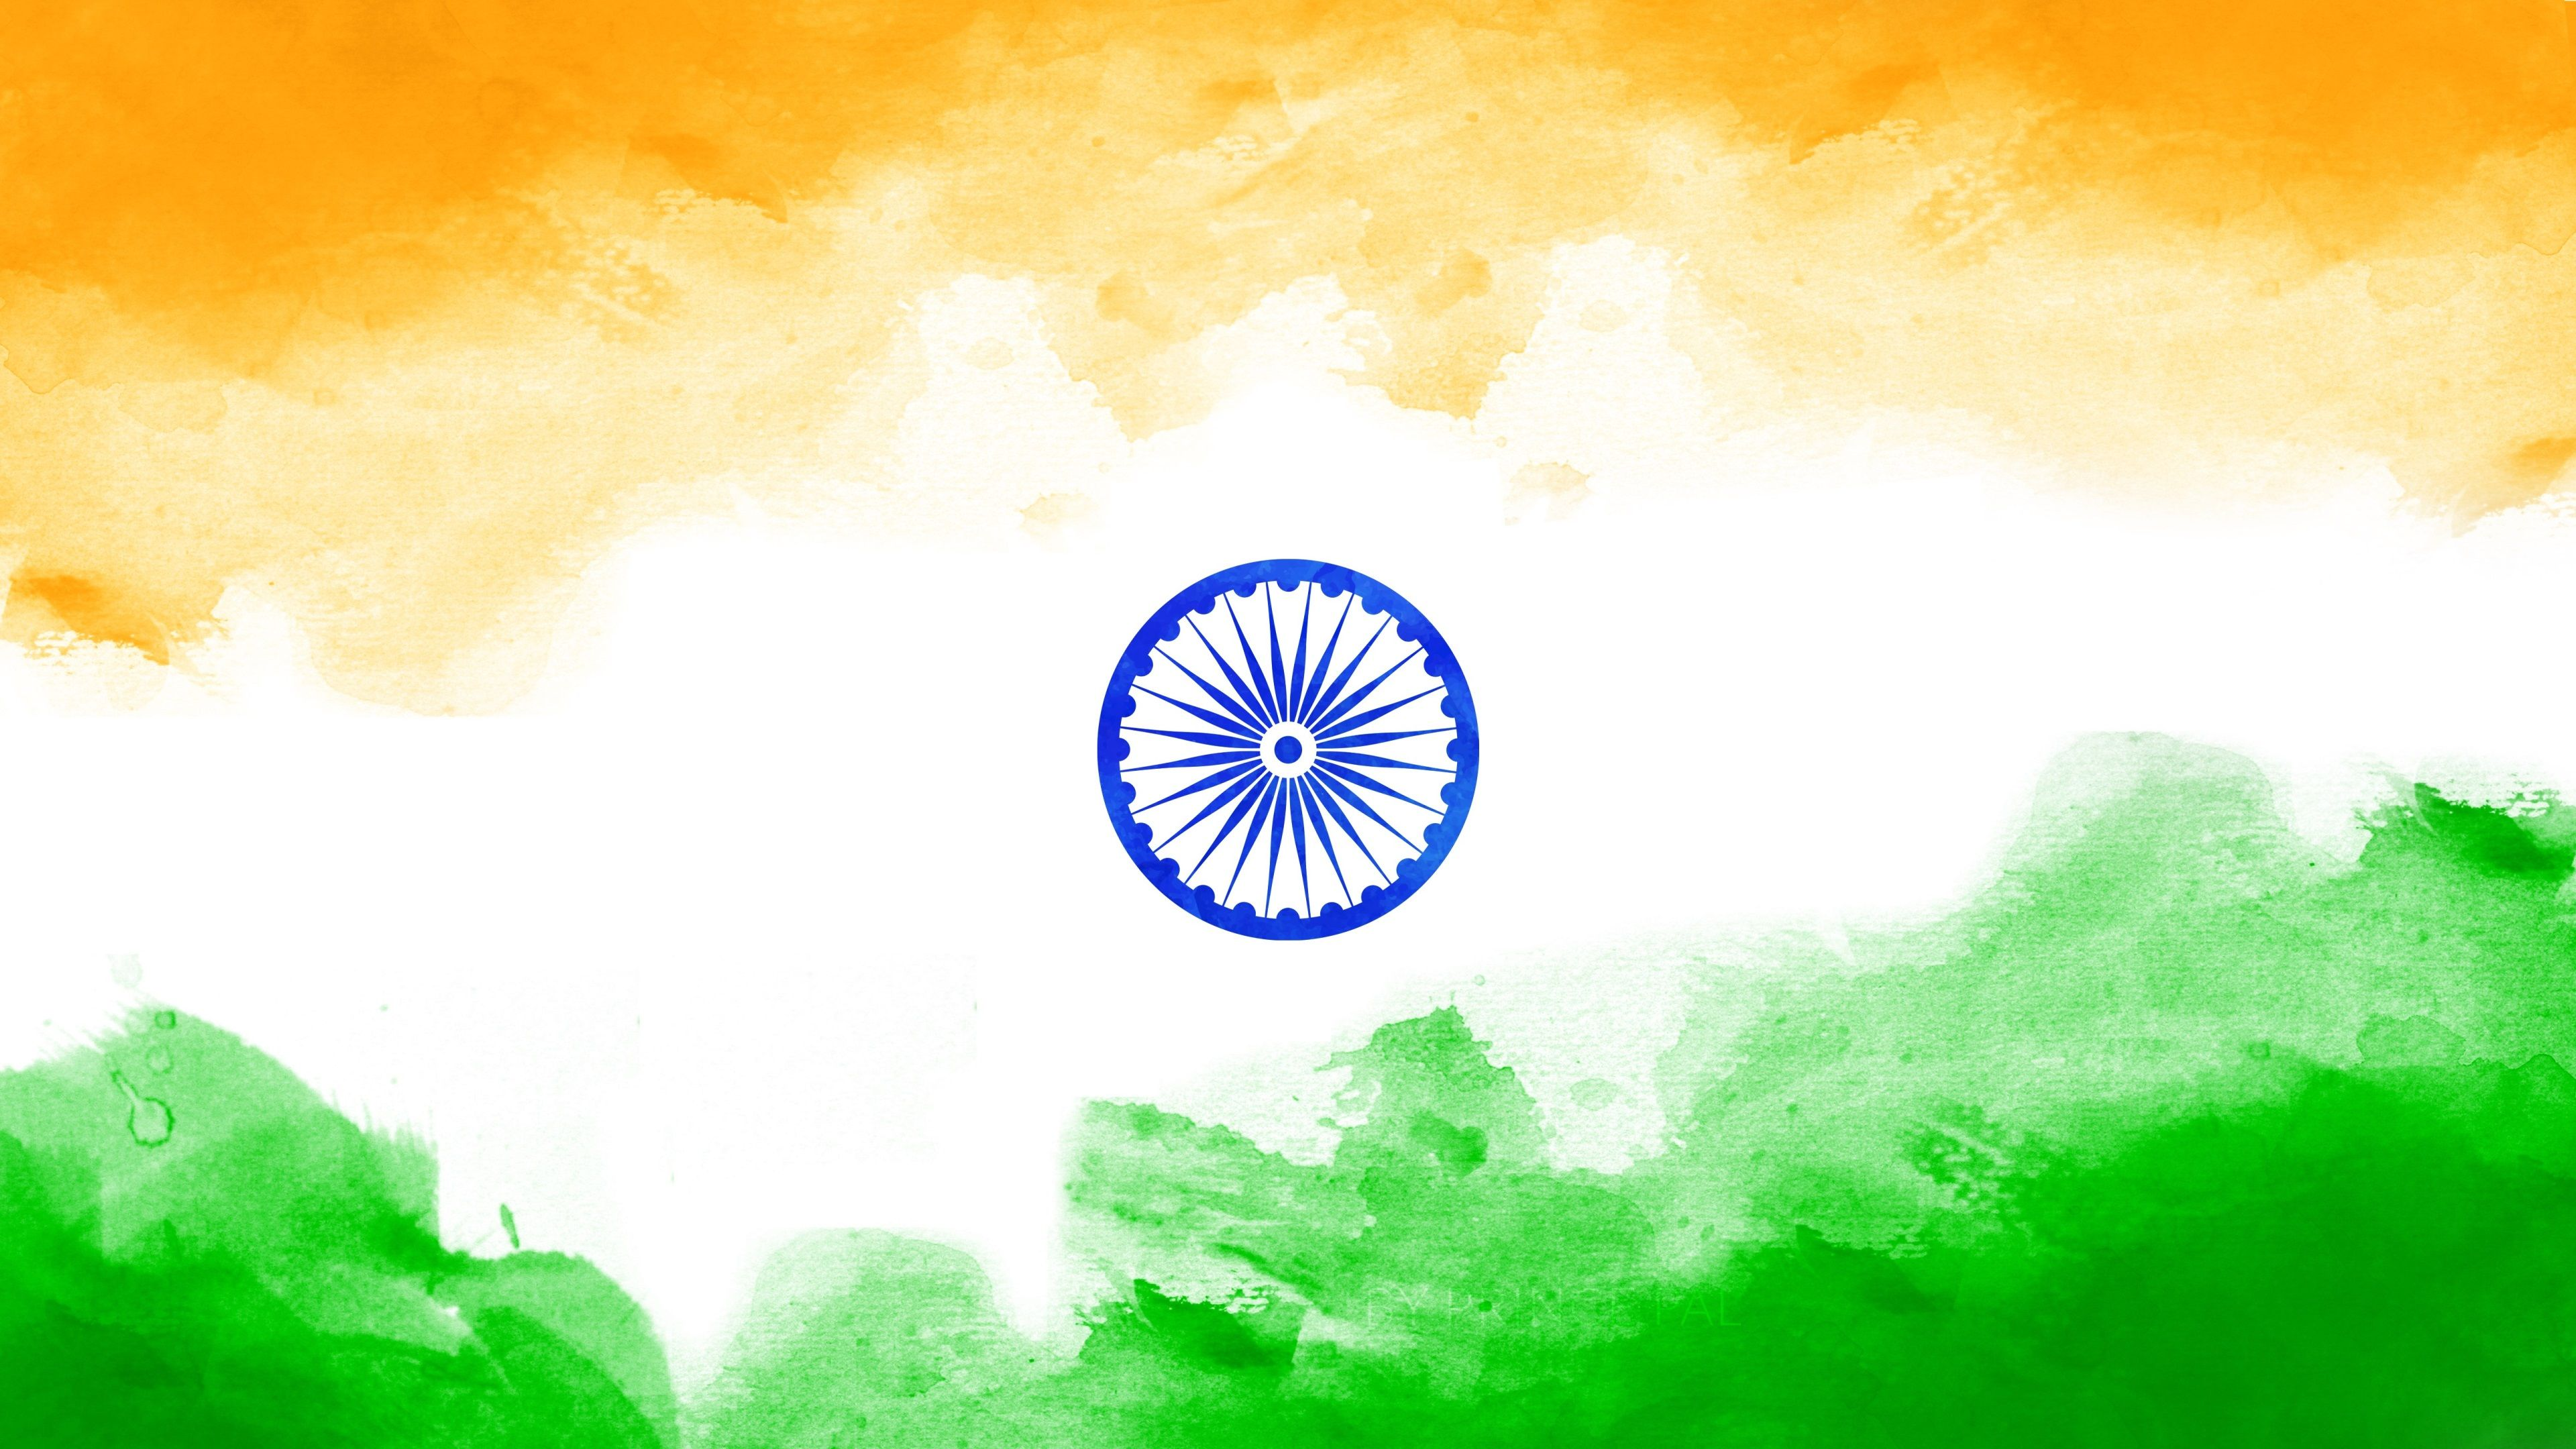 3840x2160 flag of india 4k hd wallpaper for pc flags in 2019 indian flag indian flag - Indian flag 4k wallpaper ...